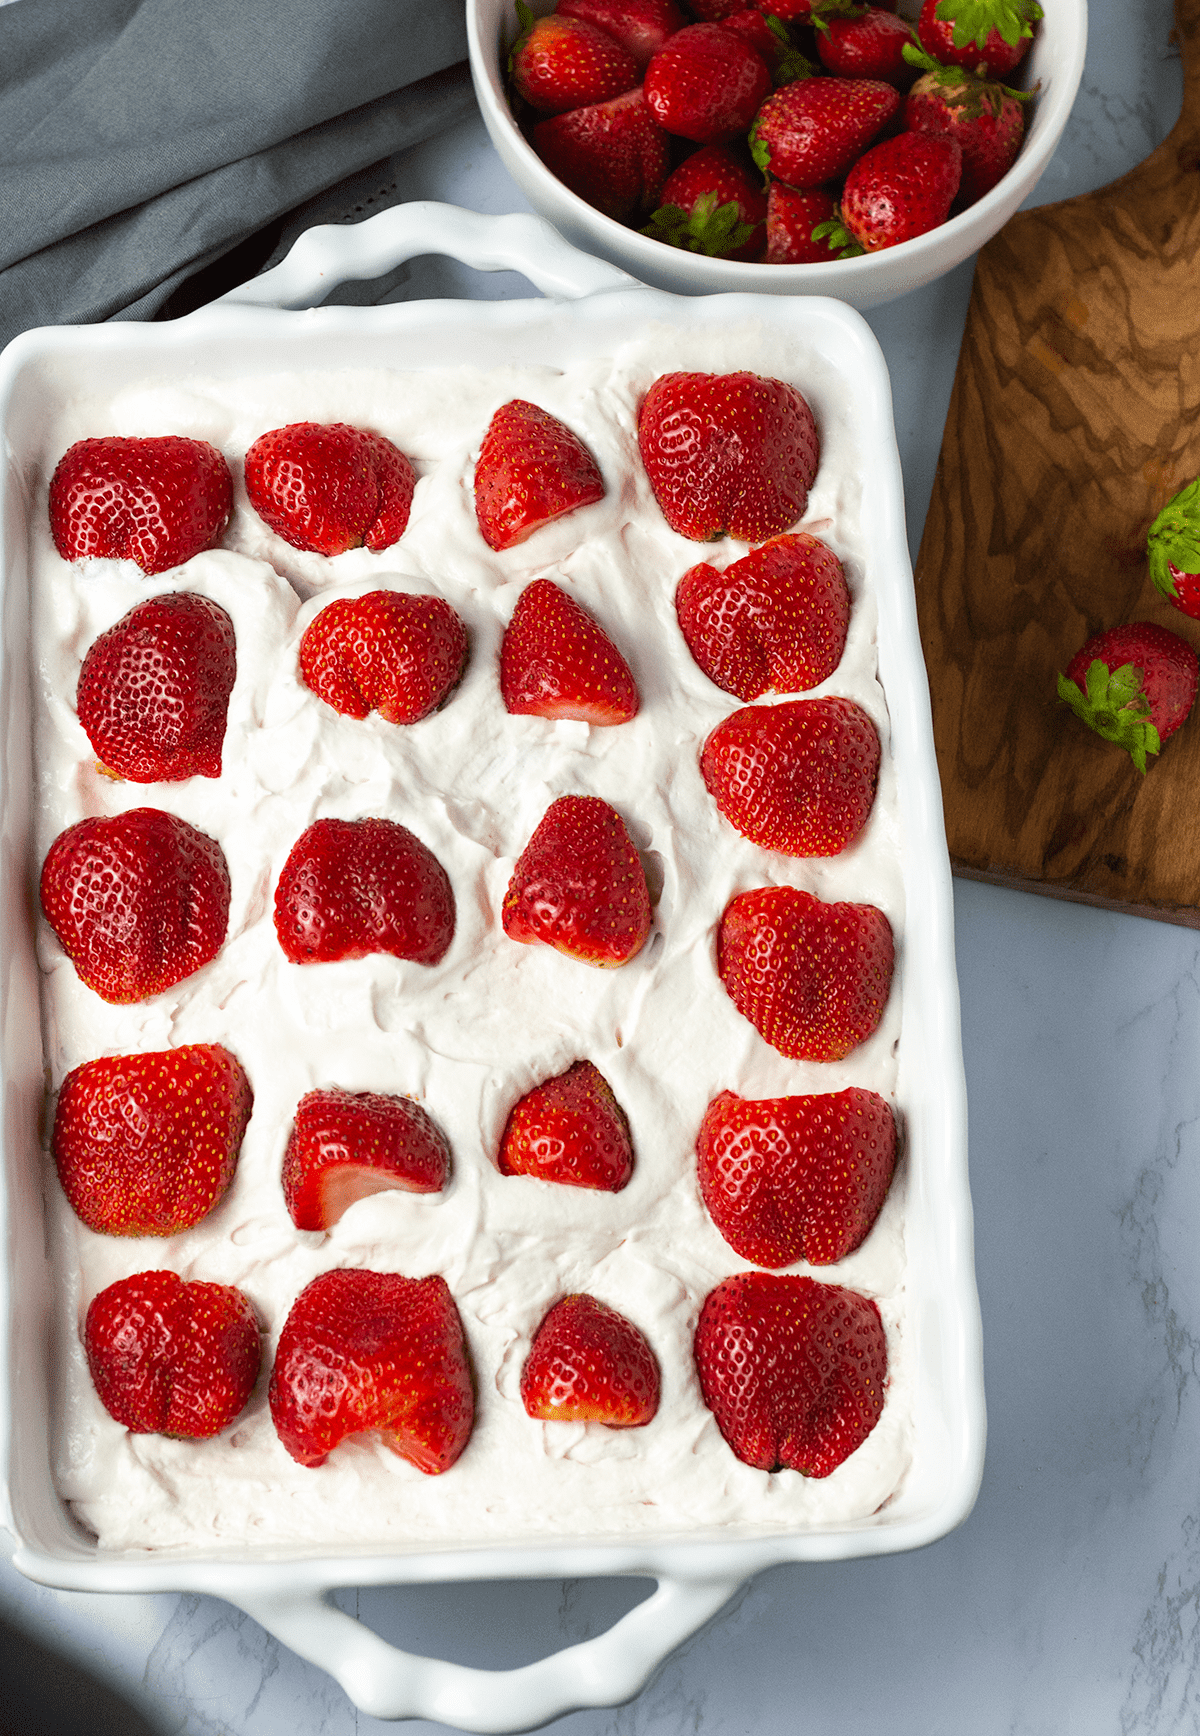 Gluten-Free Vegan Strawberry Ice Box Cake